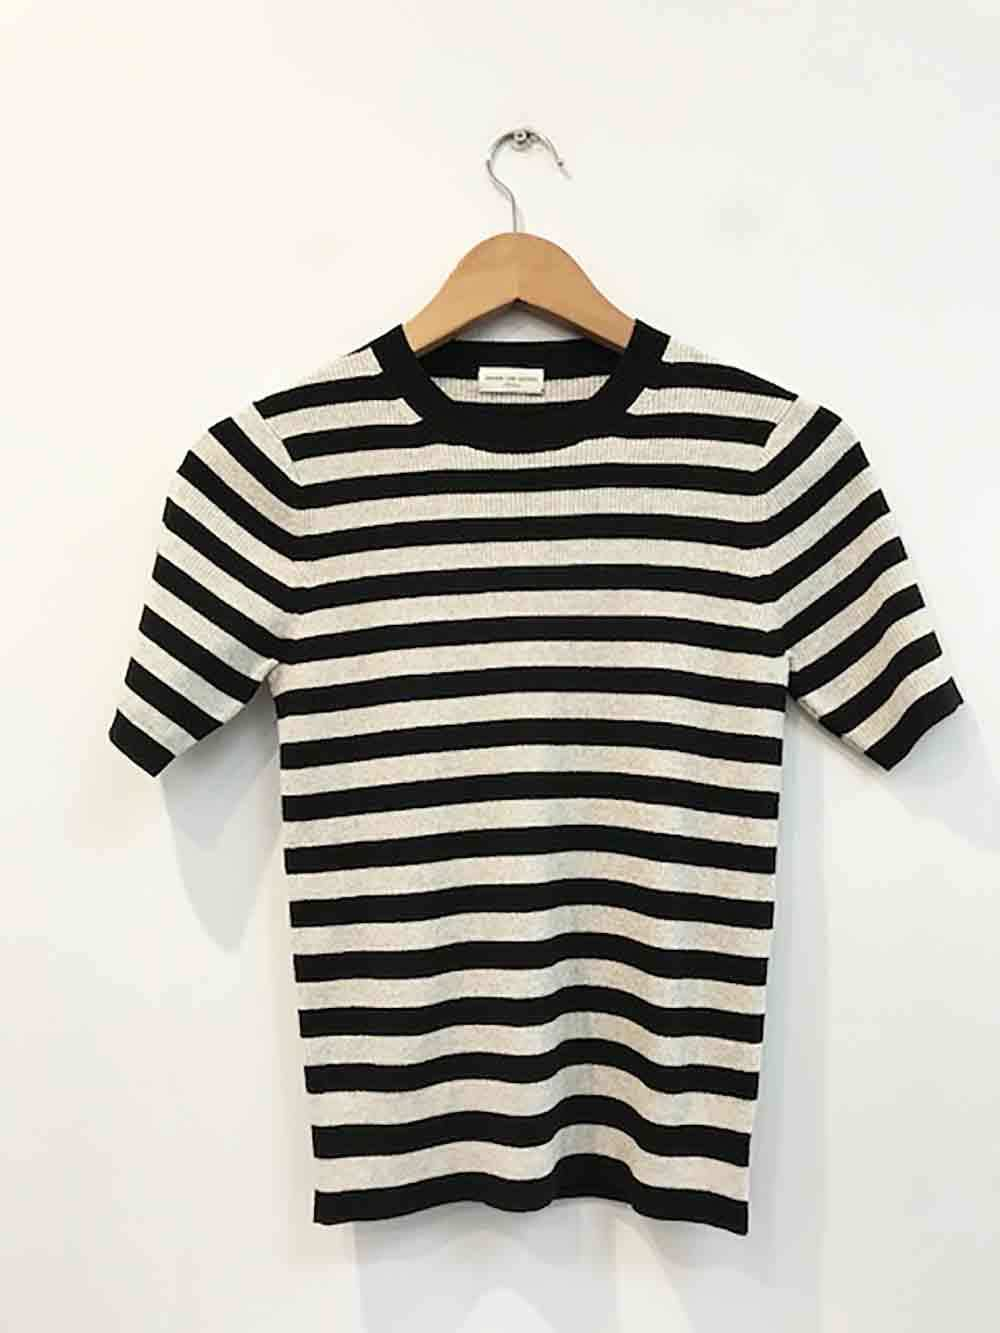 Designer BNWOT Dries Van Noten Größe Medium Striped Knit Woherren Top